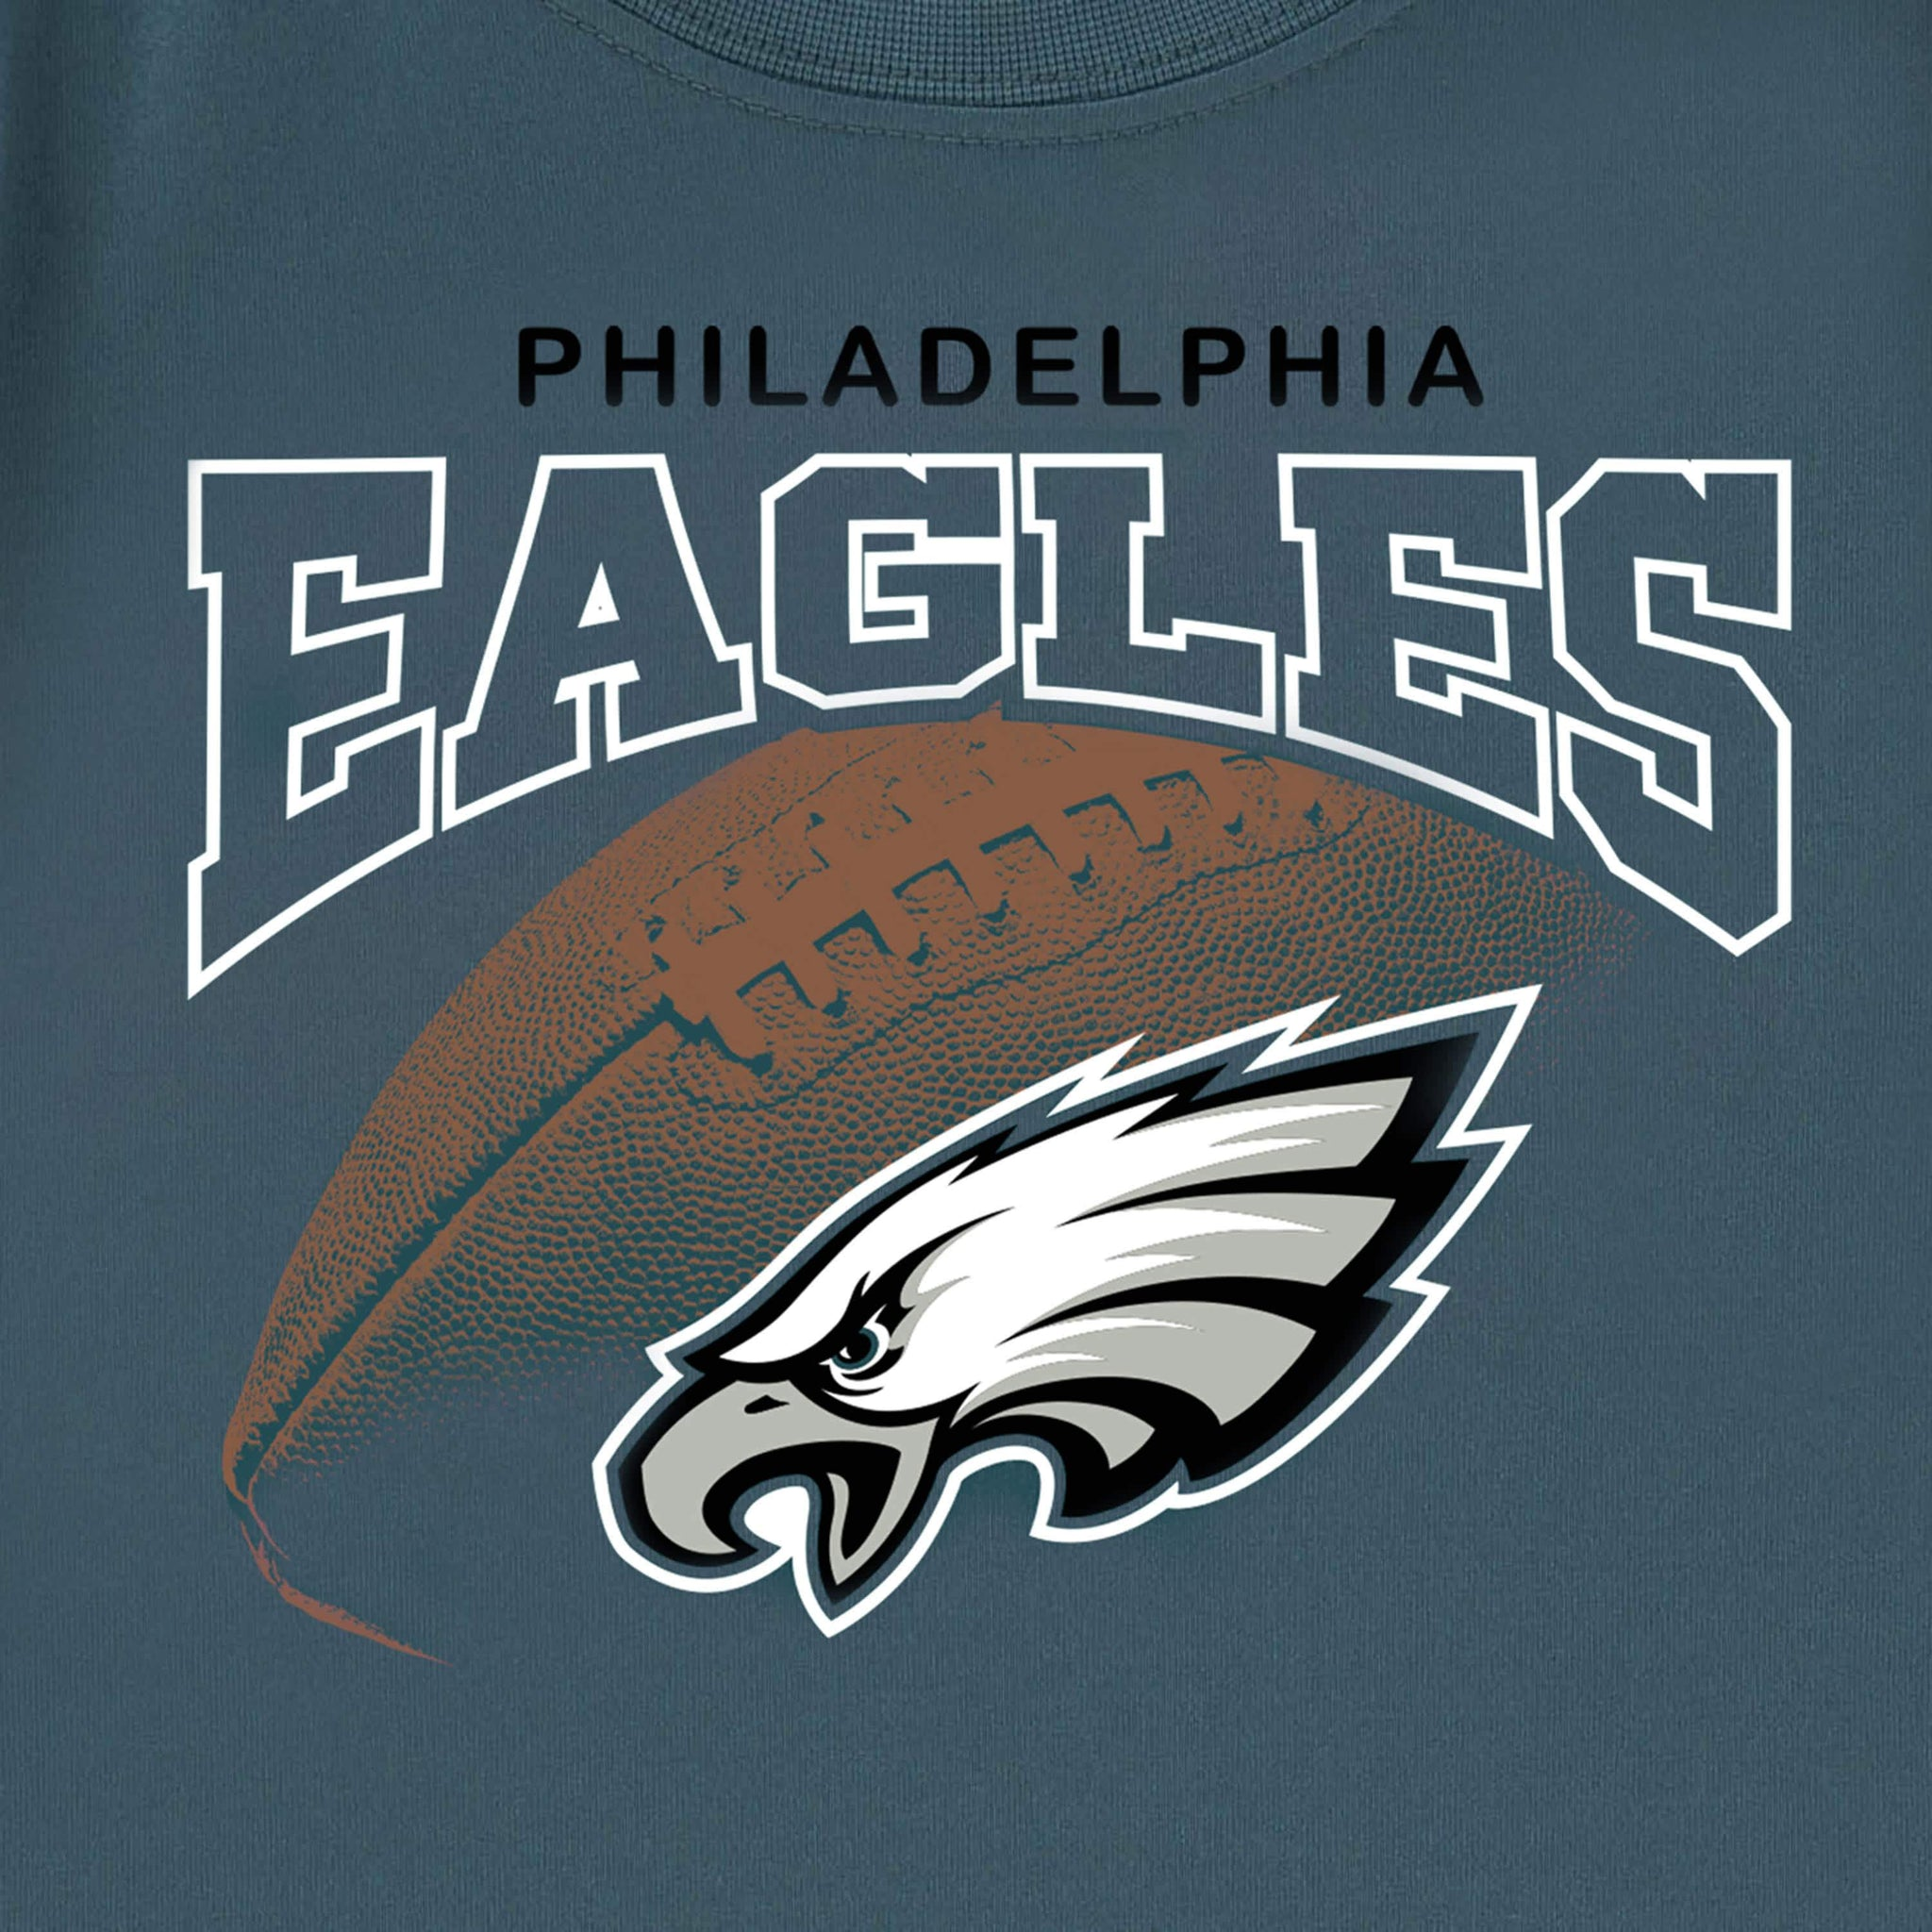 Philidelphia Eagles Baby Boys Tee Shirt-Gerber Childrenswear